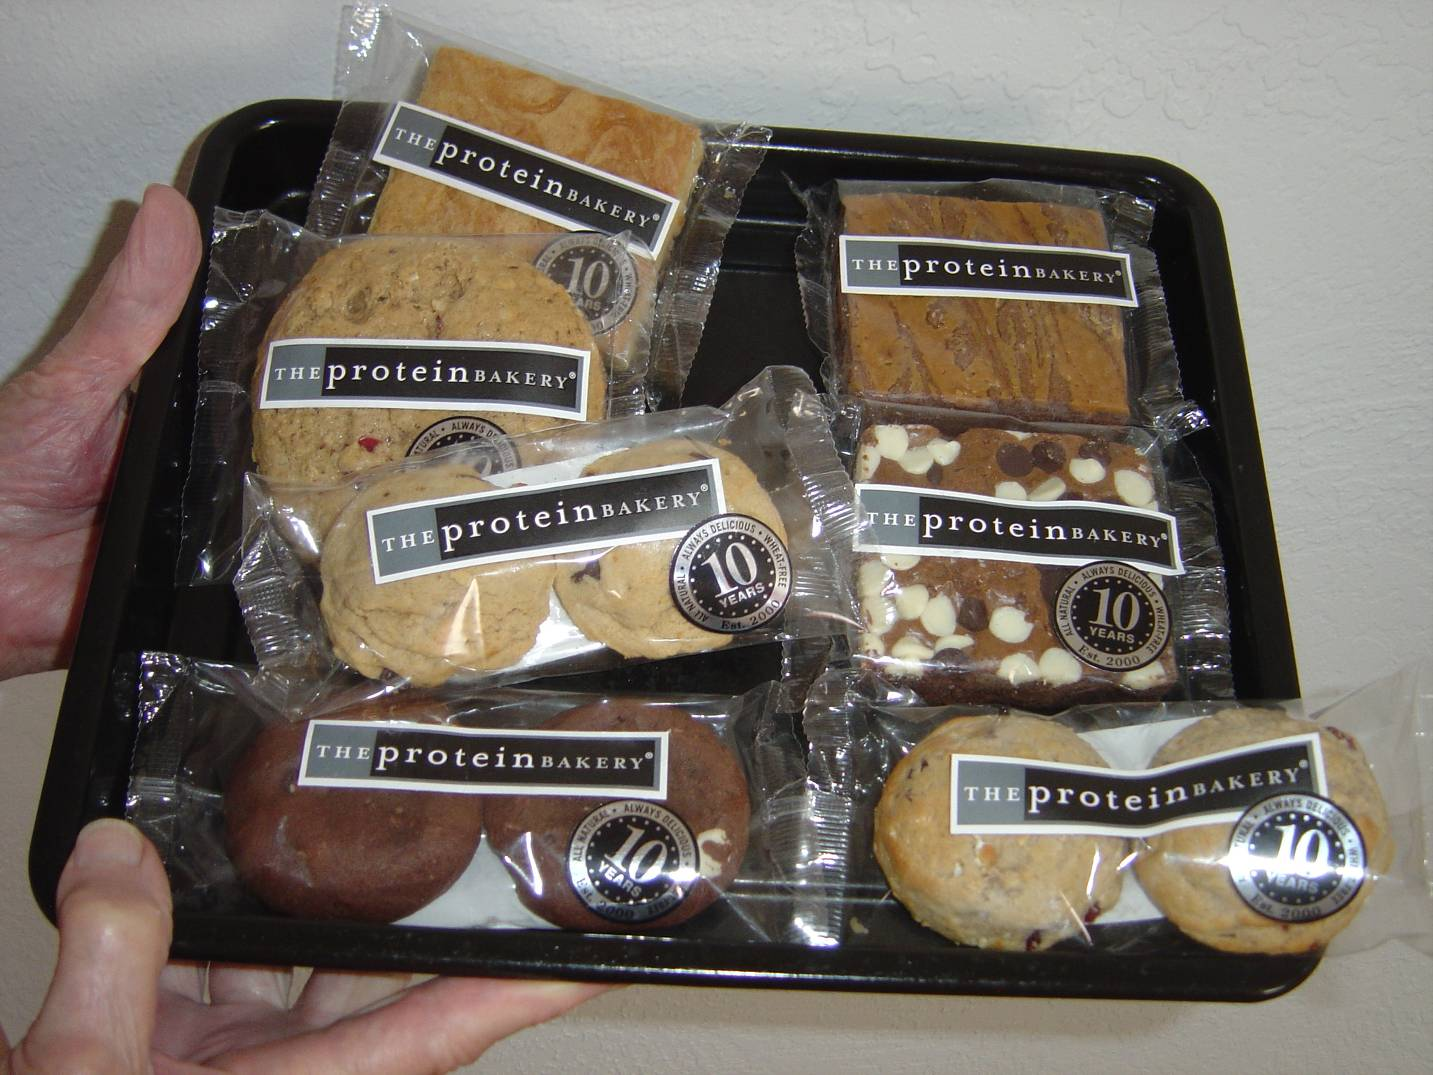 baked goods assortment from Protein Bakery.jpeg